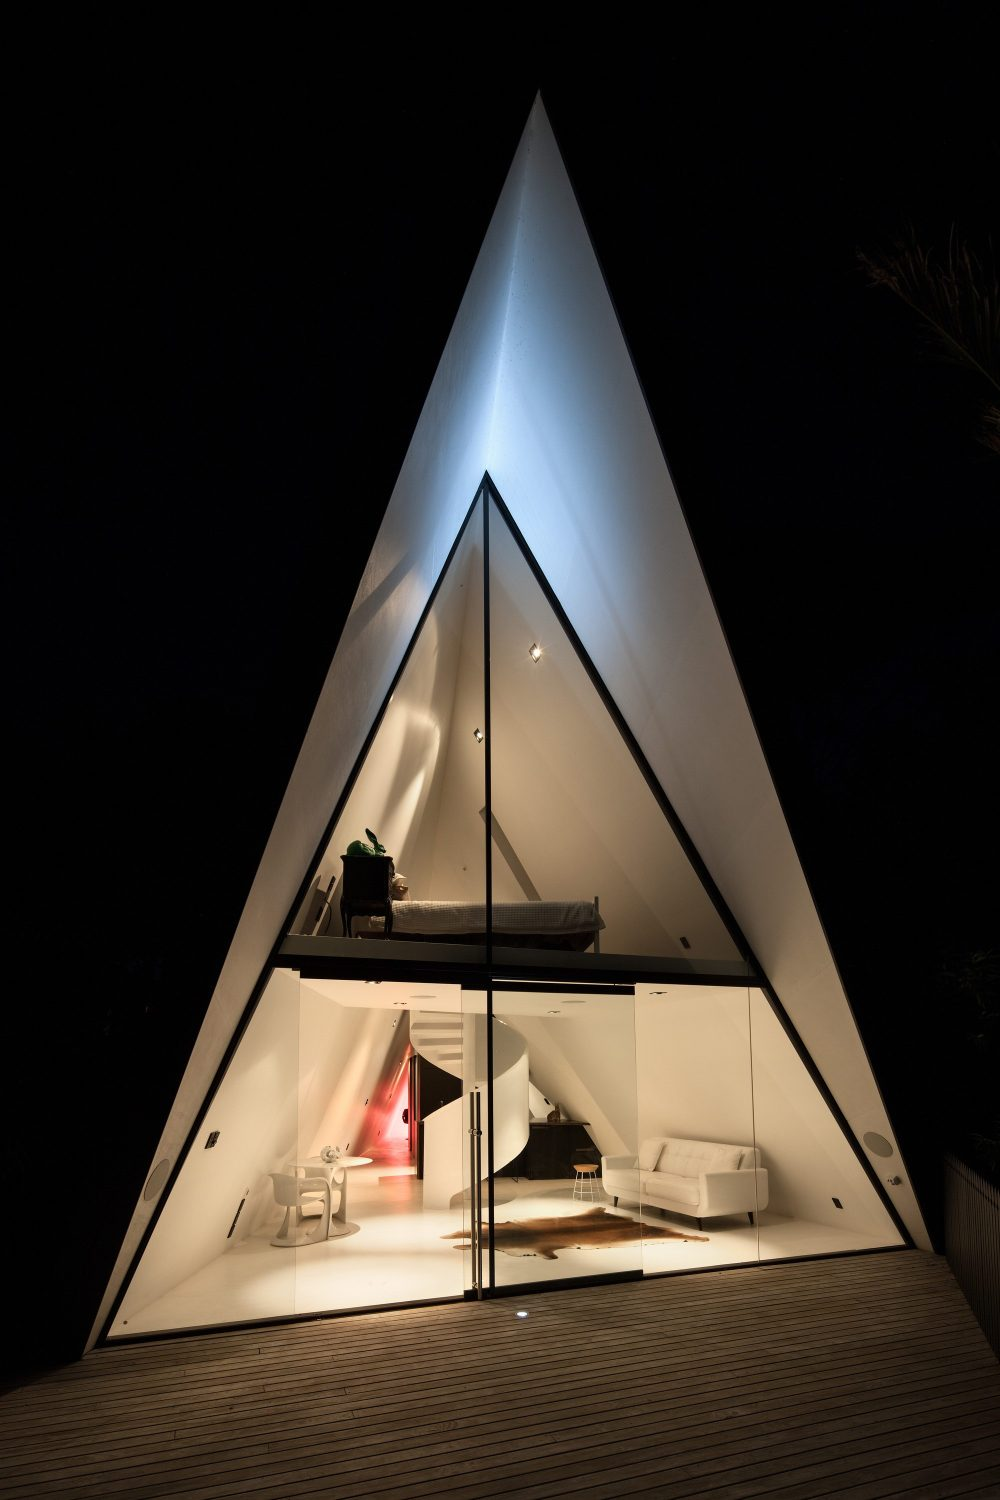 Tent House | A-Frame Cabin by Chris Tate